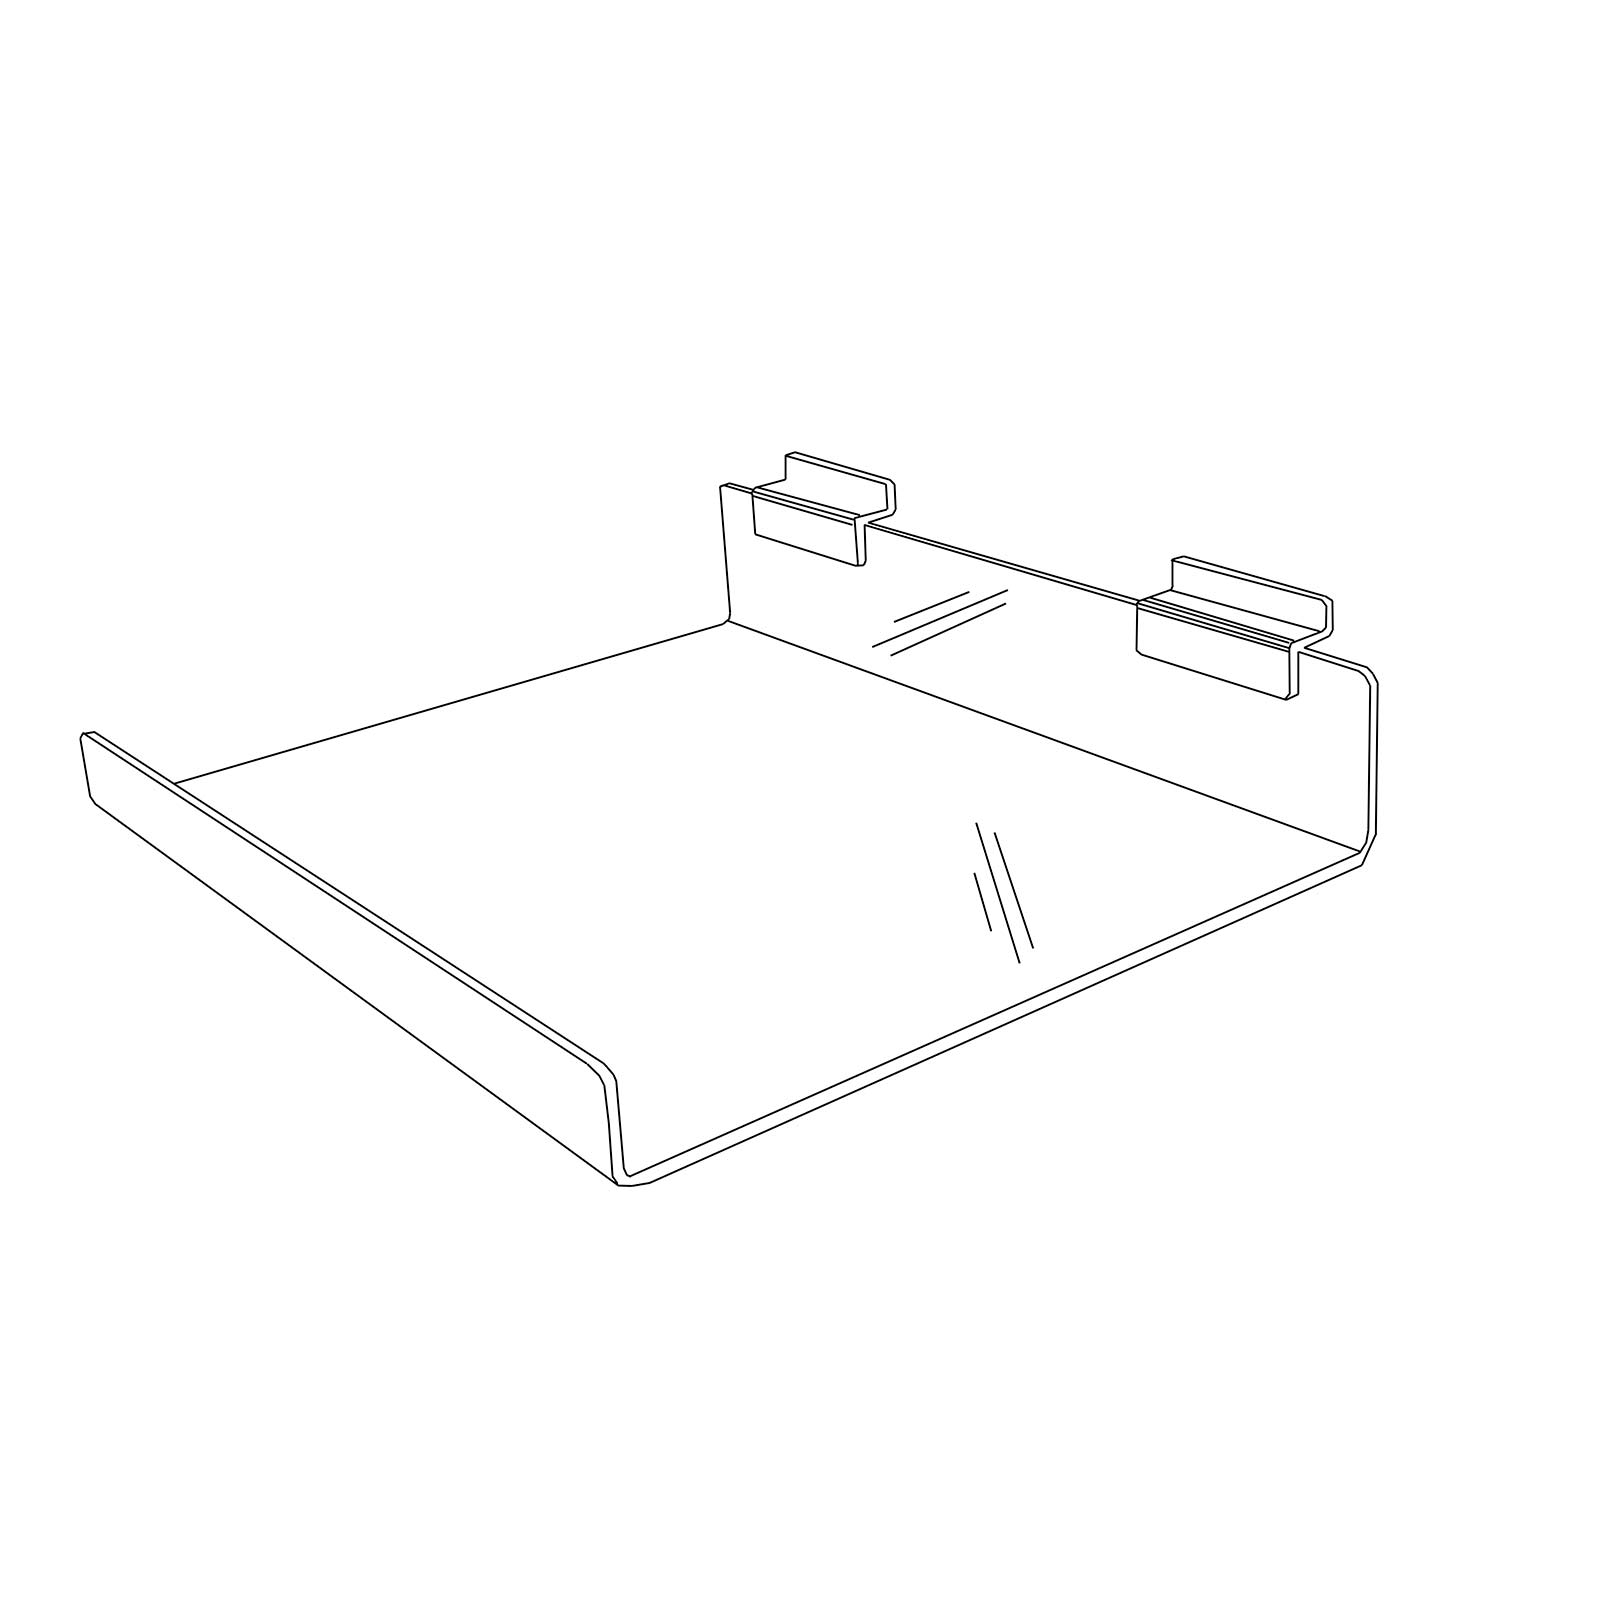 dbfead0f224 Large Acrylic Slatwall Shelf with Front Lip for Shoes (G233)